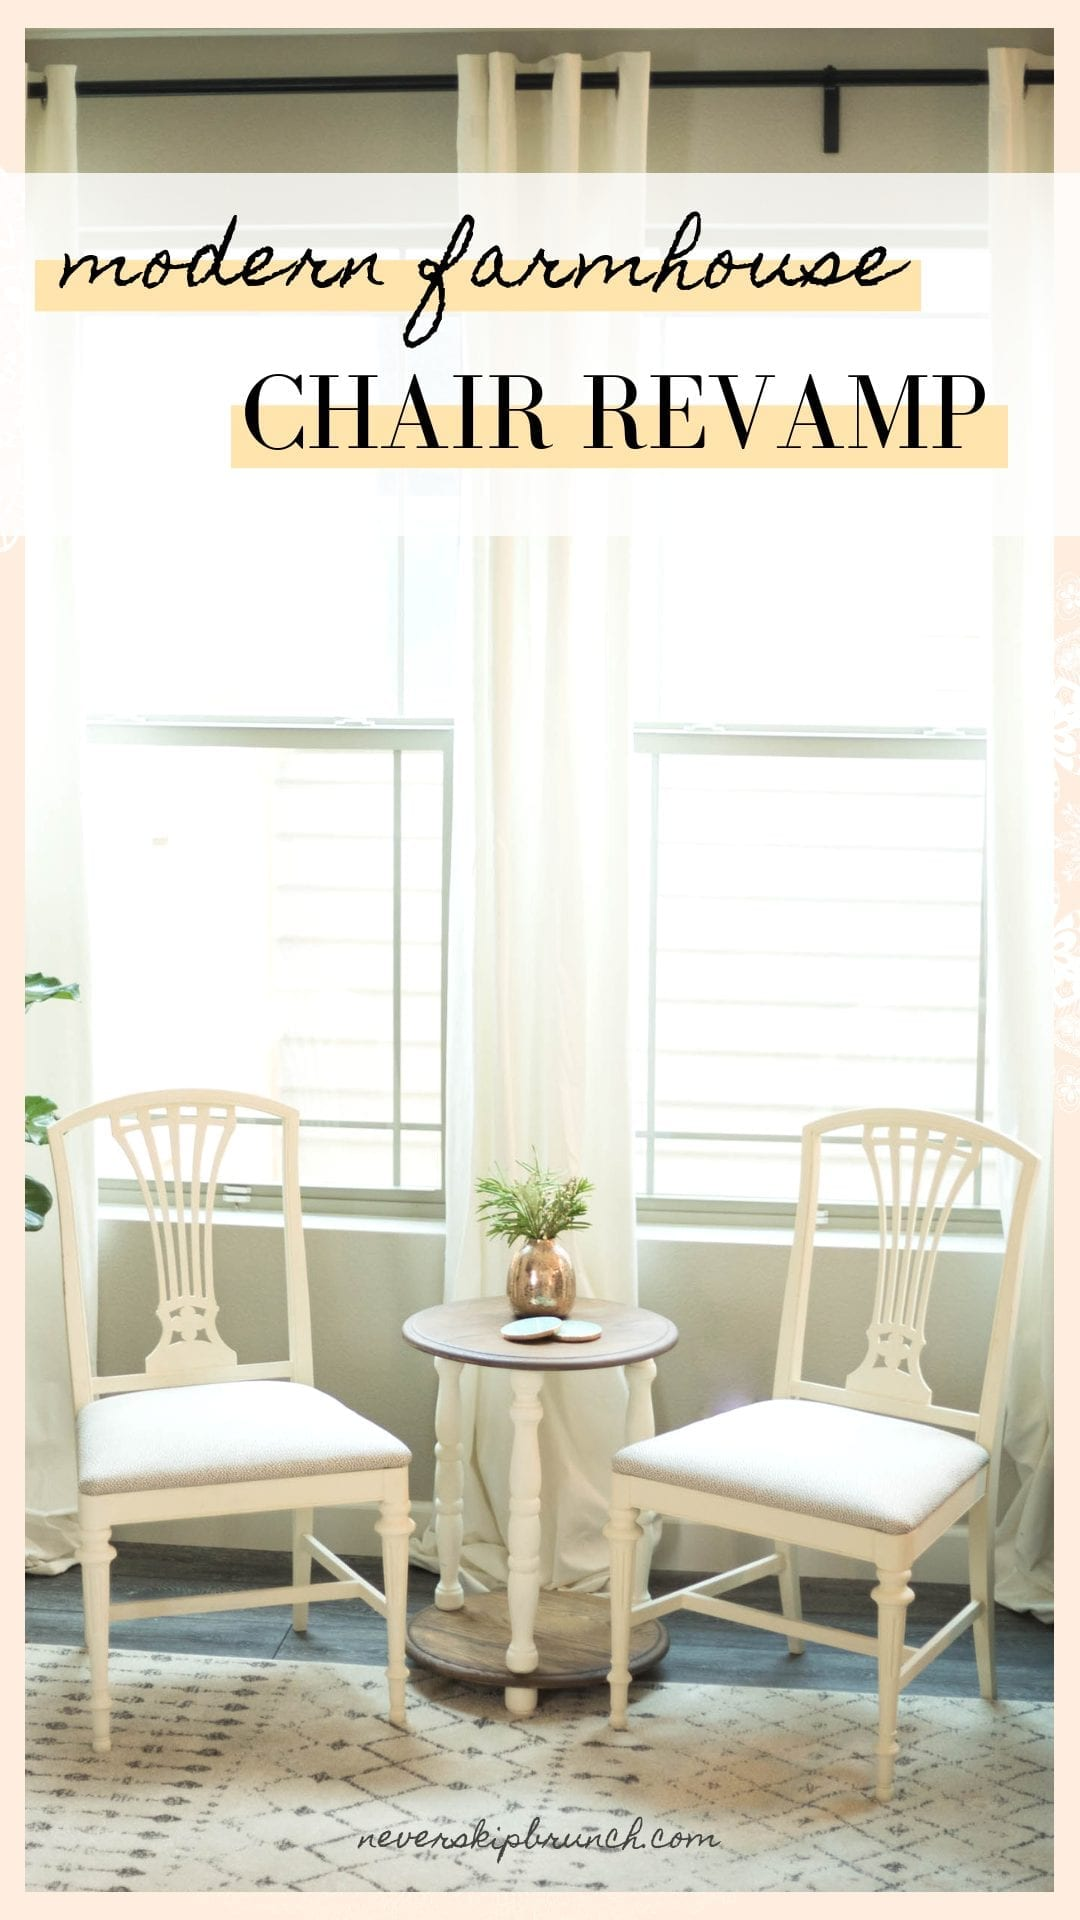 Check out this furniture makeover diy with chalk paint | DIY Modern Farmhouse Chairs | #neverskipbrunch neverskipbrunch.com  never skip brunch by cara newhart #DIY #furniture #farmhouse